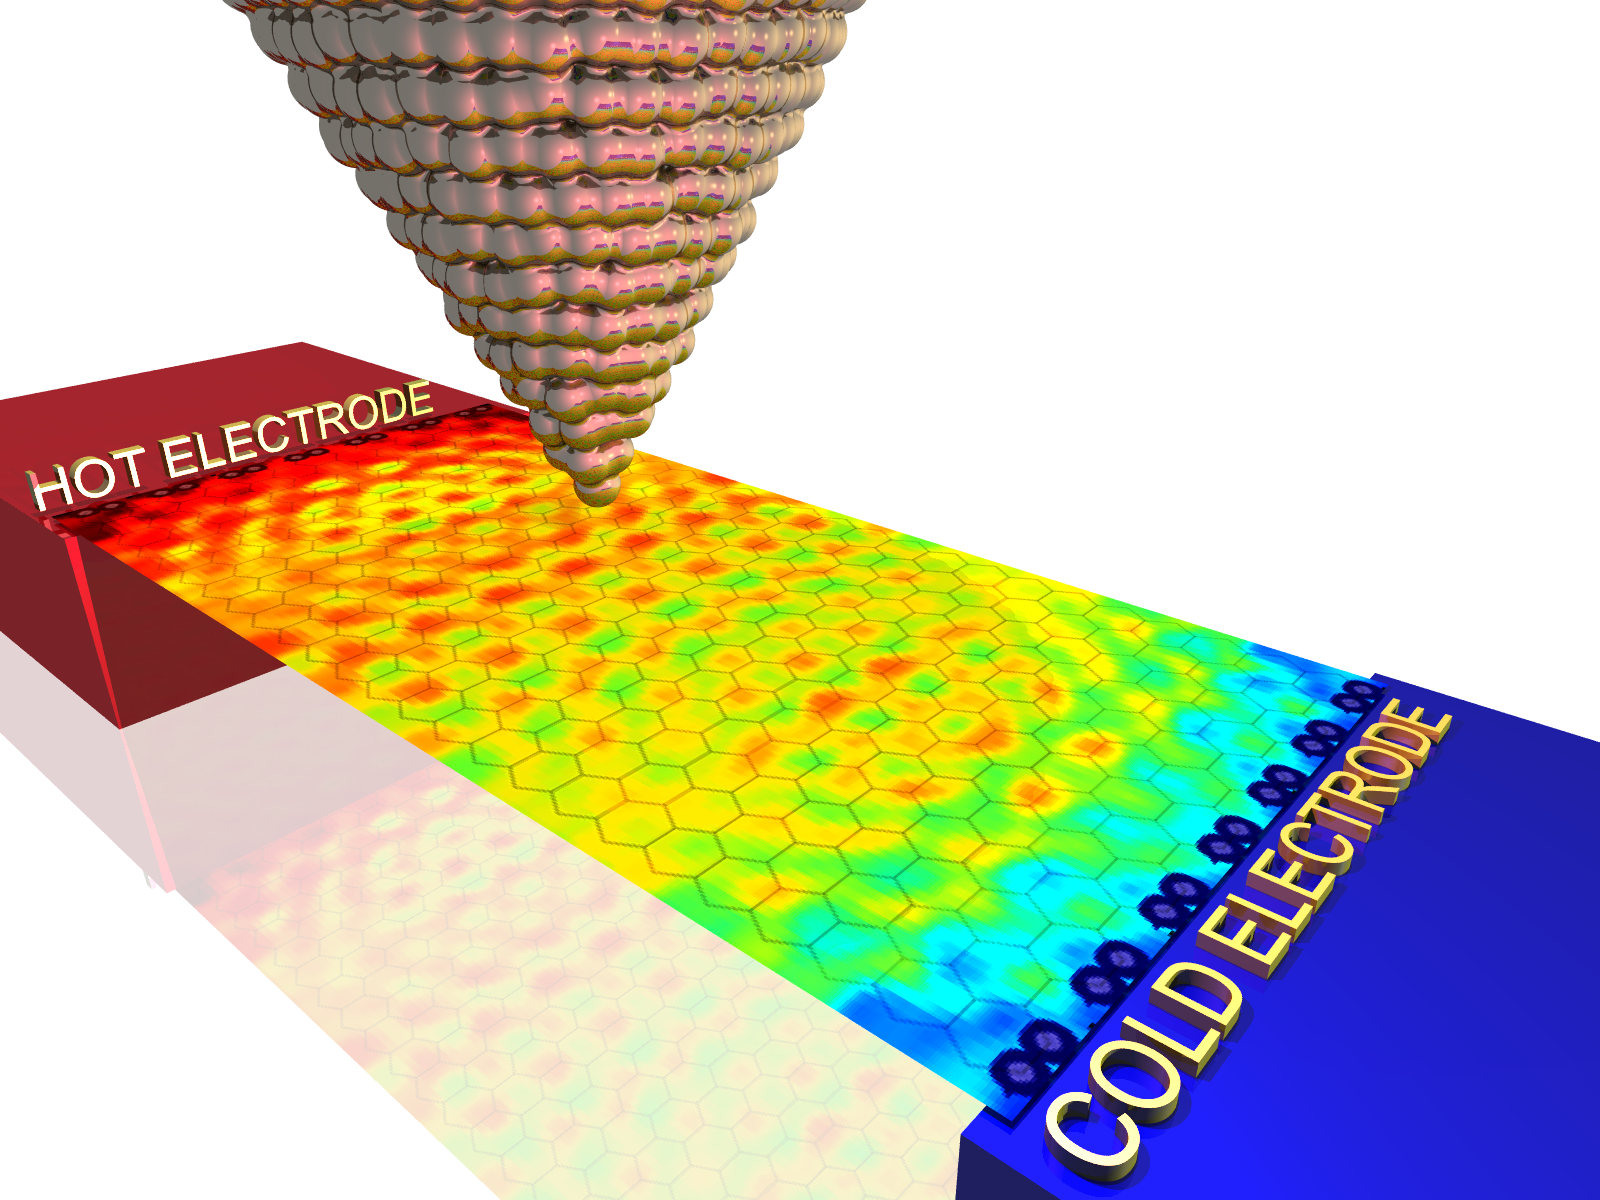 In the strange world of graphene, ultrathin sheets of carbon resembling chickenwire on a nanoscale, electrons carrying heat between two electrodes propagate as two-dimensional quantum waves, UA researchers have discovered. Instead of dissipating evenly th